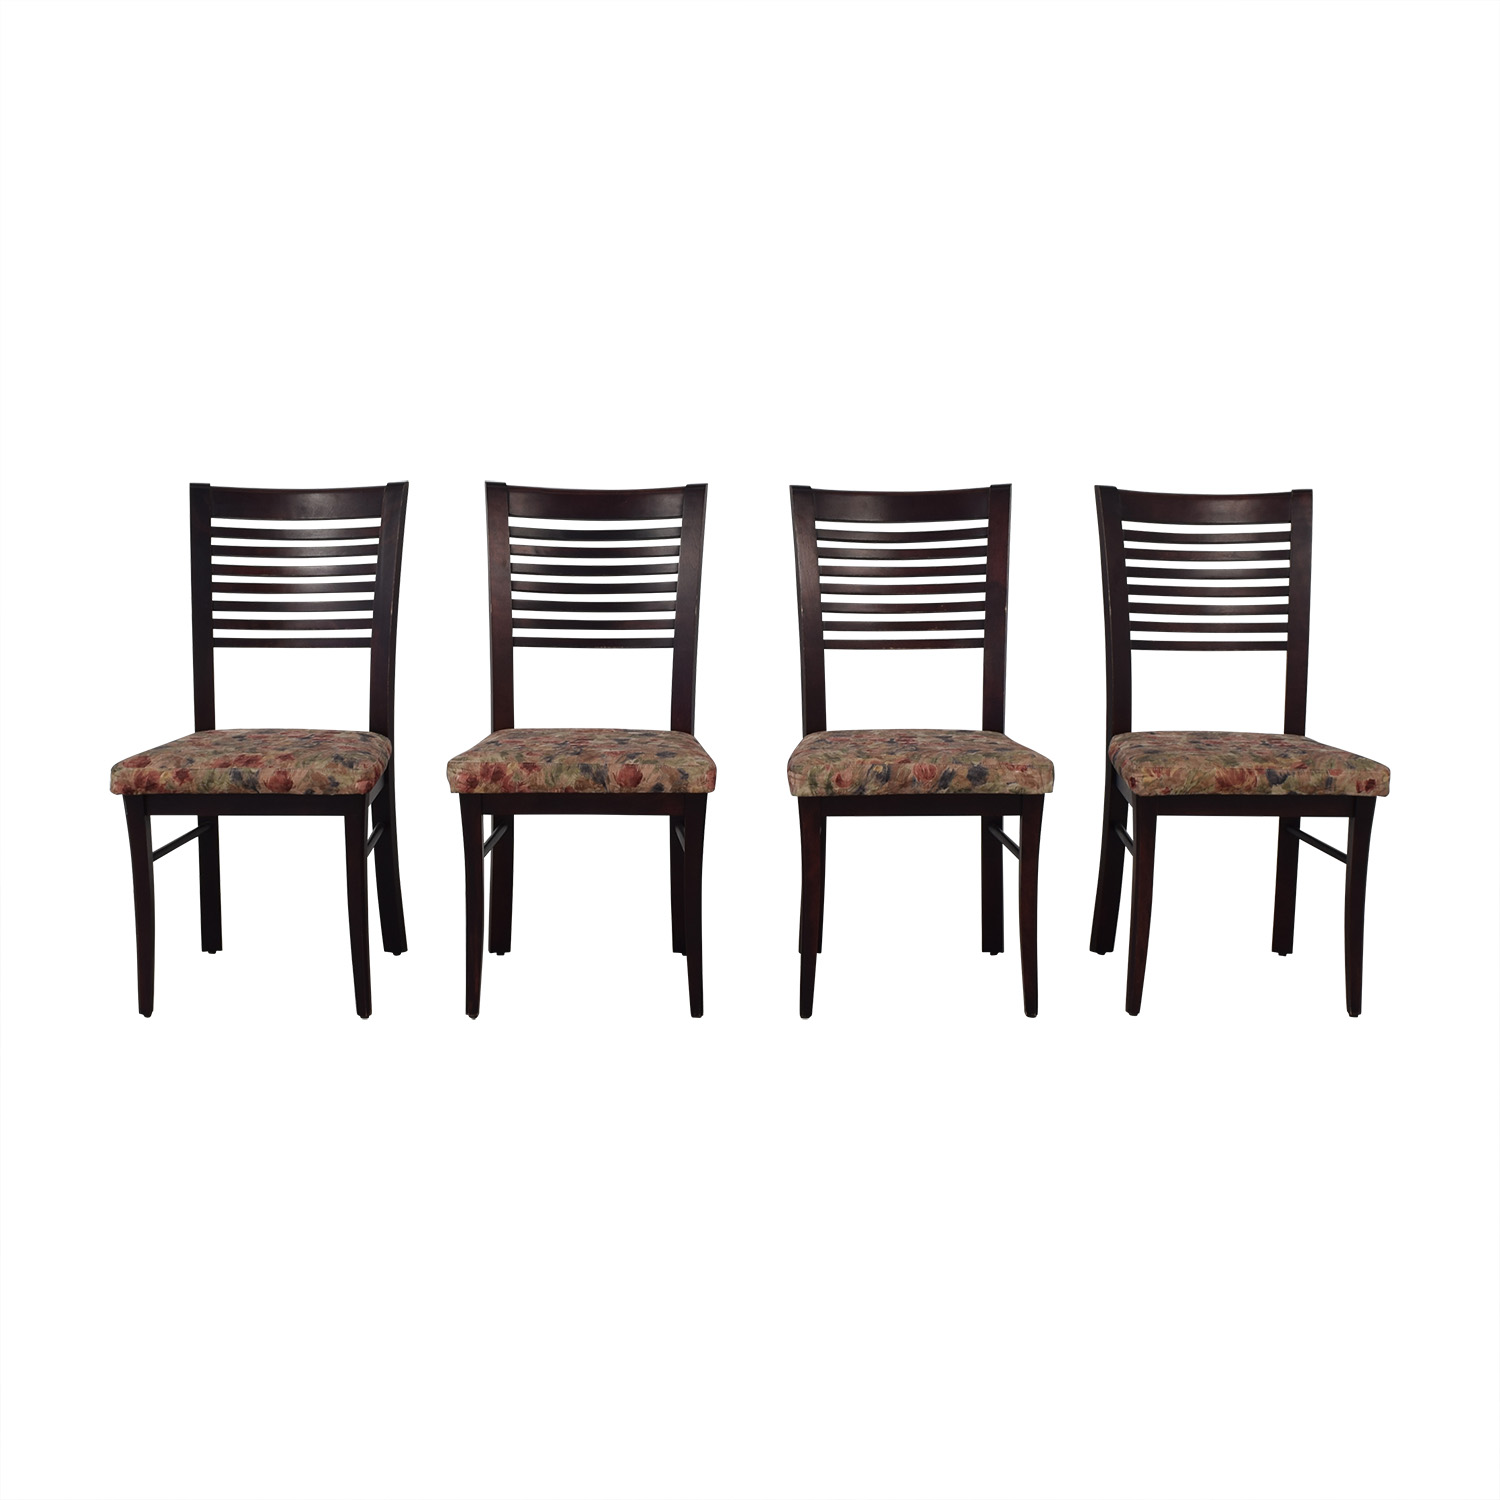 Canadel Canadel Floral Upholstered Dining Chairs dimensions